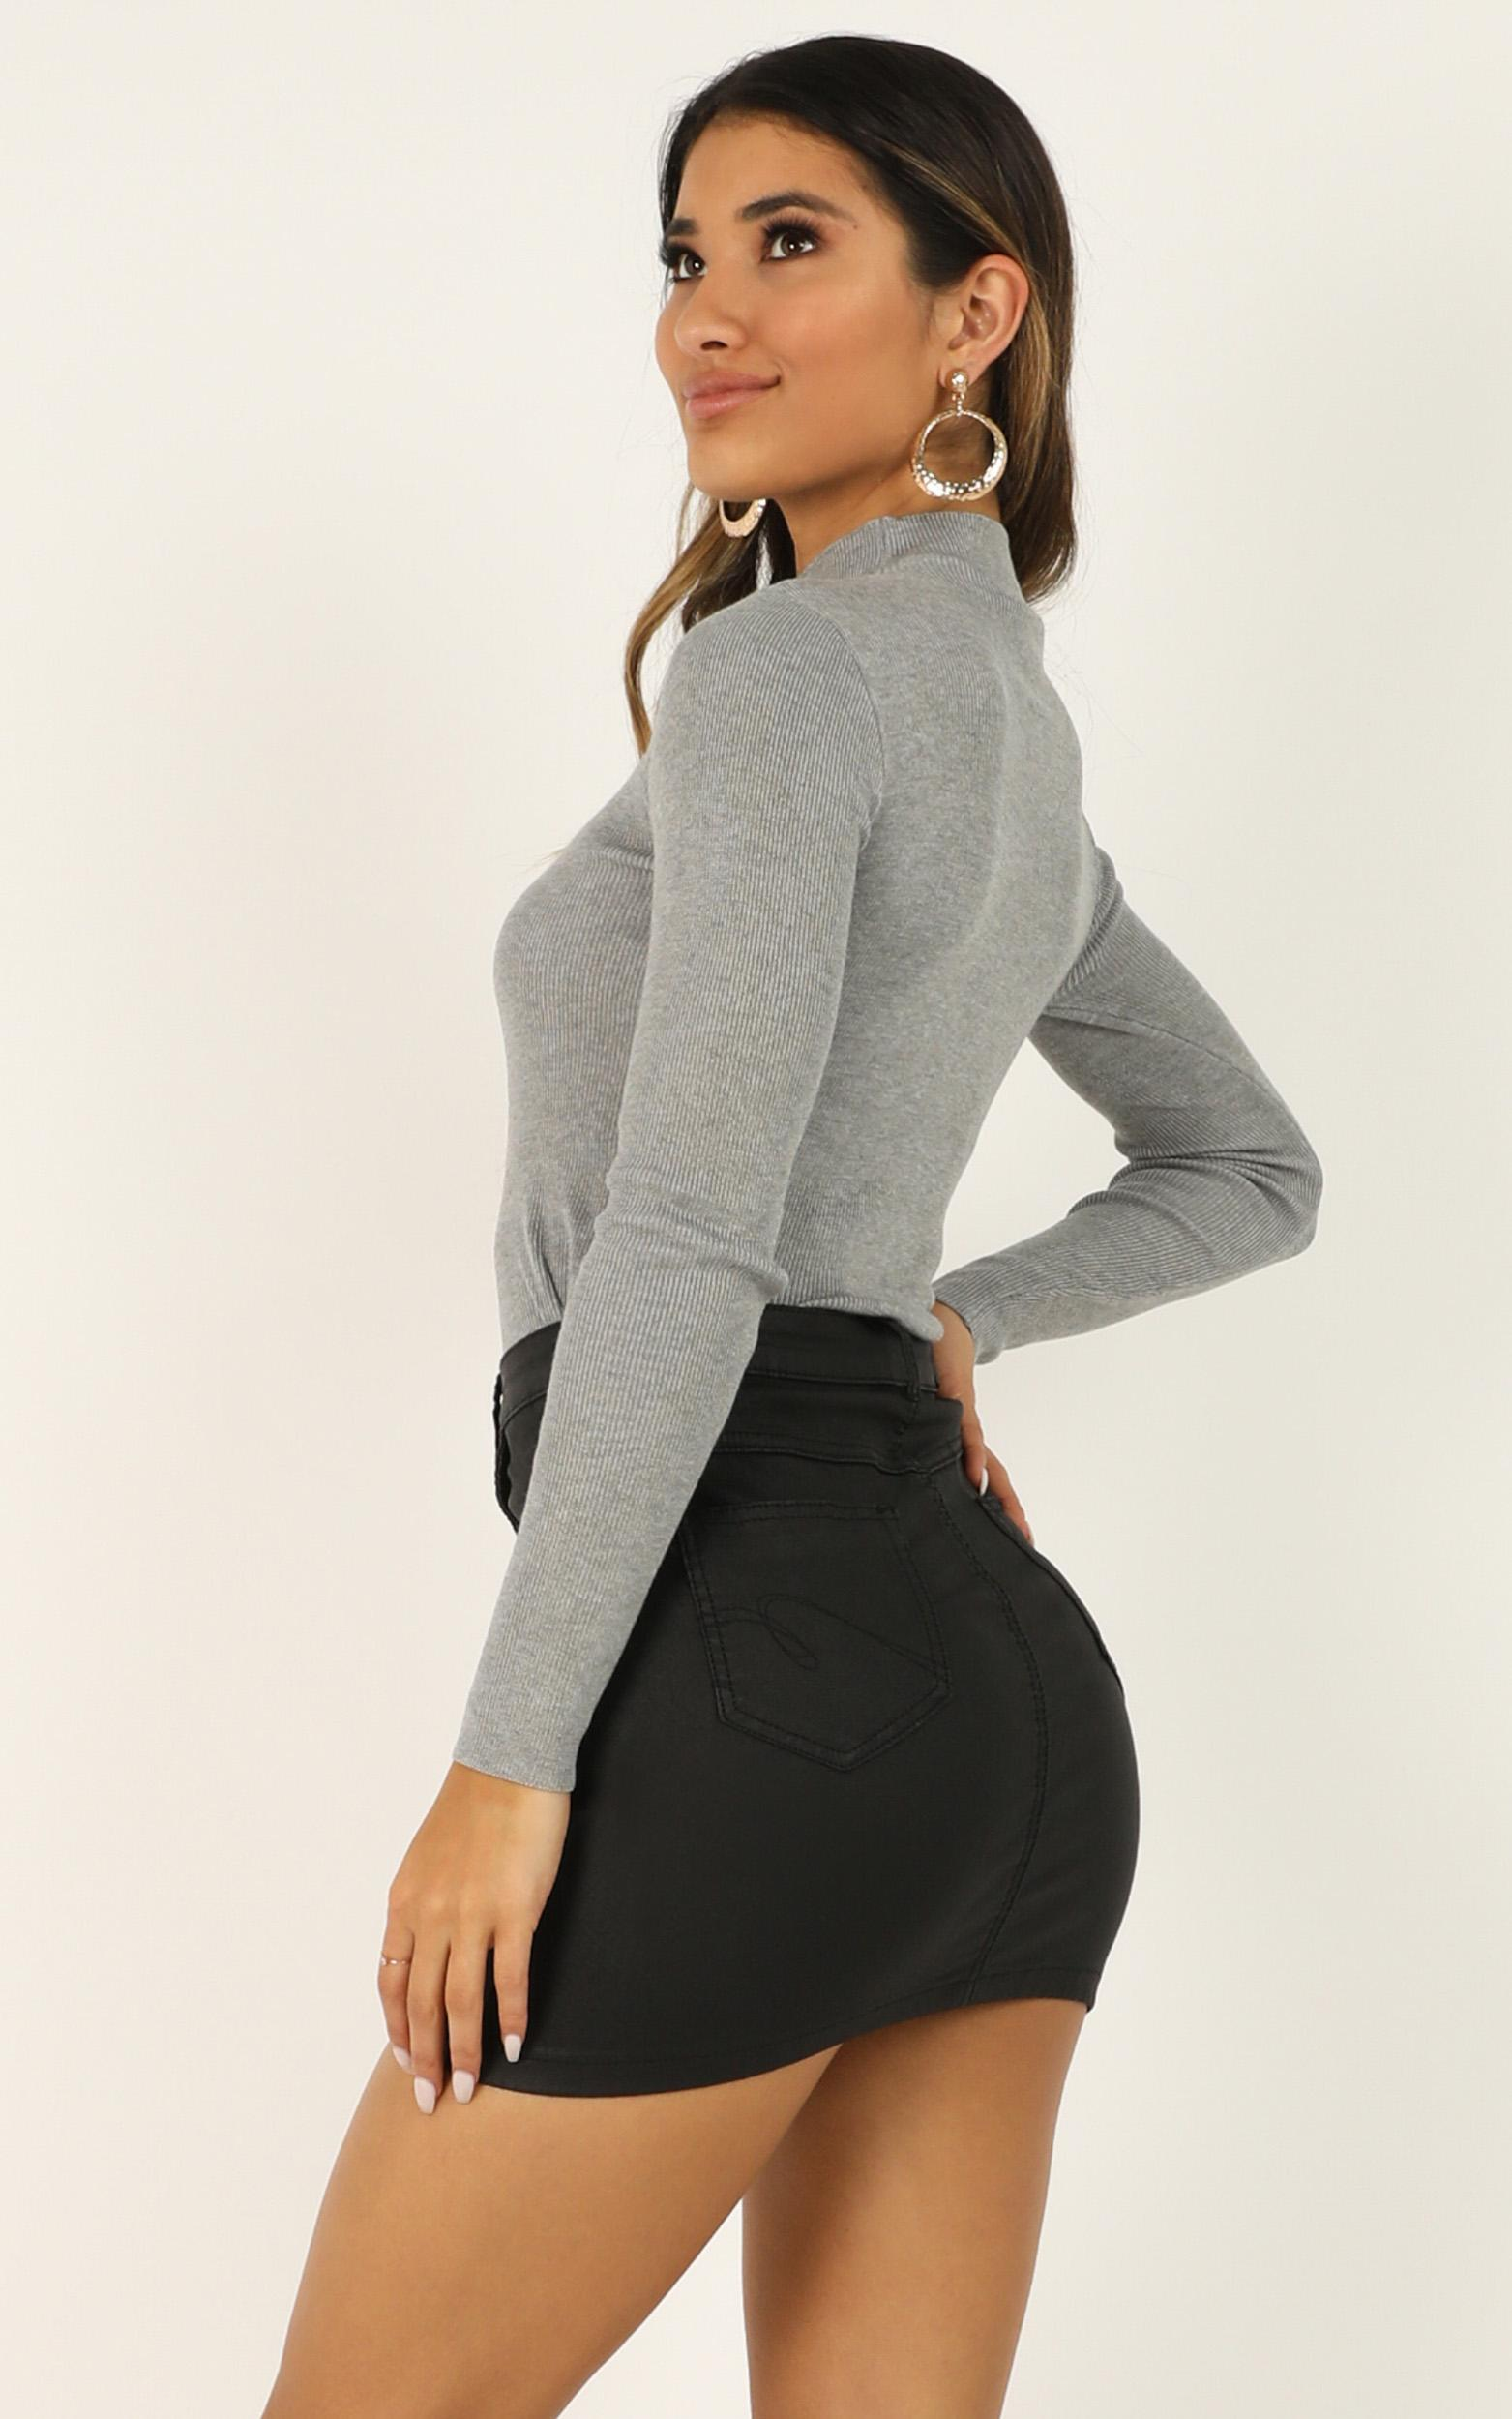 Lust for Life Knit Top in grey marle - 20 (XXXXL), Grey, hi-res image number null